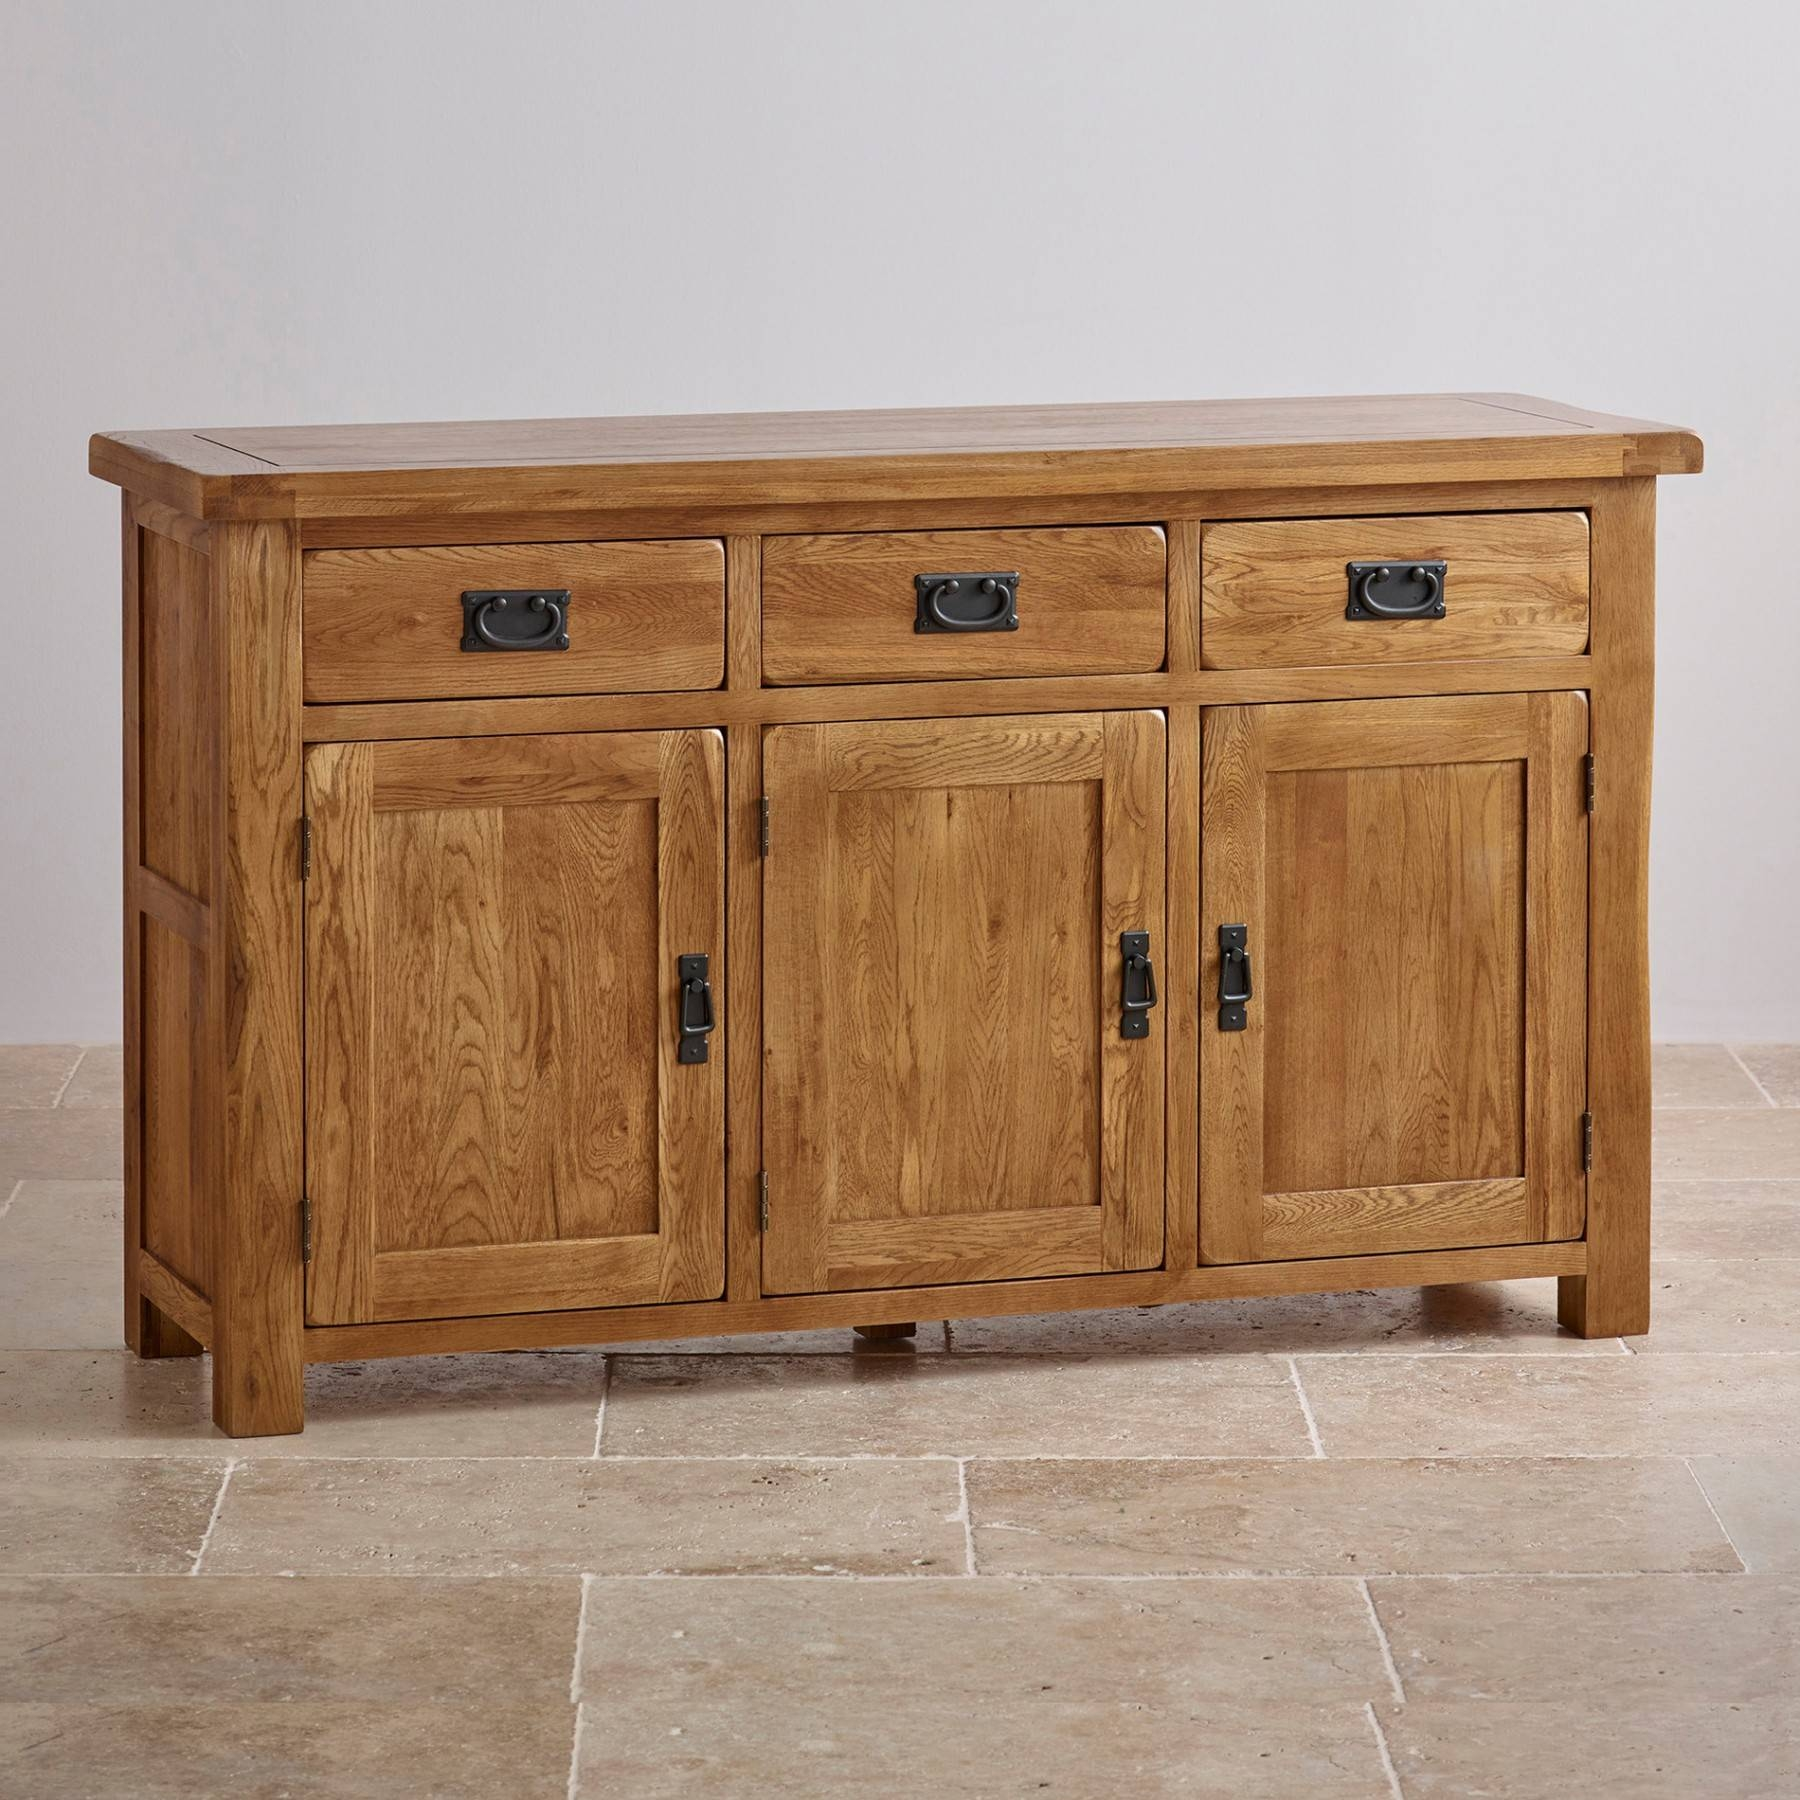 Sideboards | Oak, Mango And Painted | Oak Furniture Land Throughout Most Current Oak Furniture Land Sideboards (View 2 of 15)